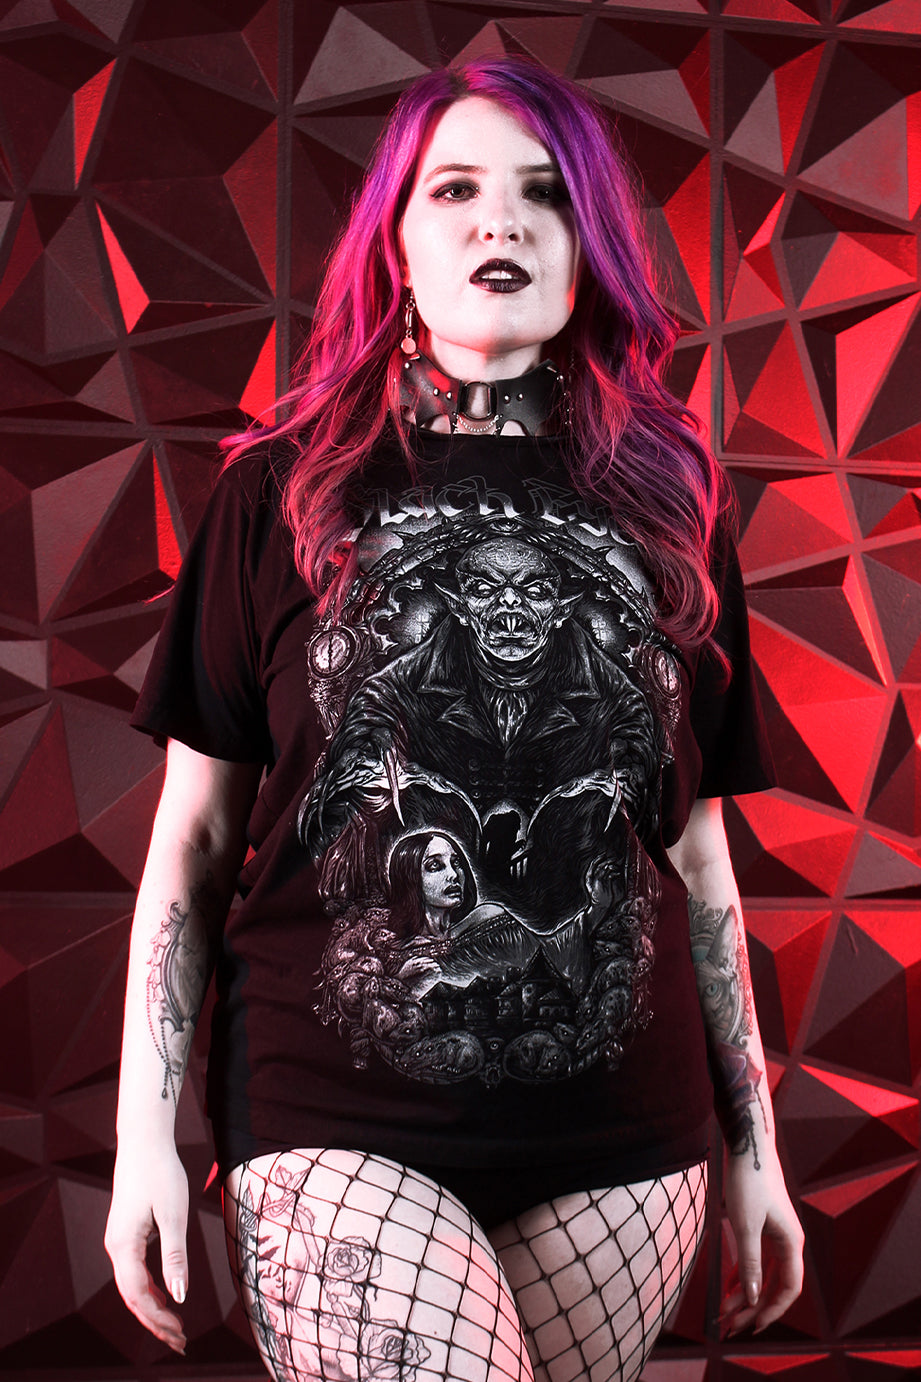 BLOOD IS LIFE UNISEX T-SHIRT